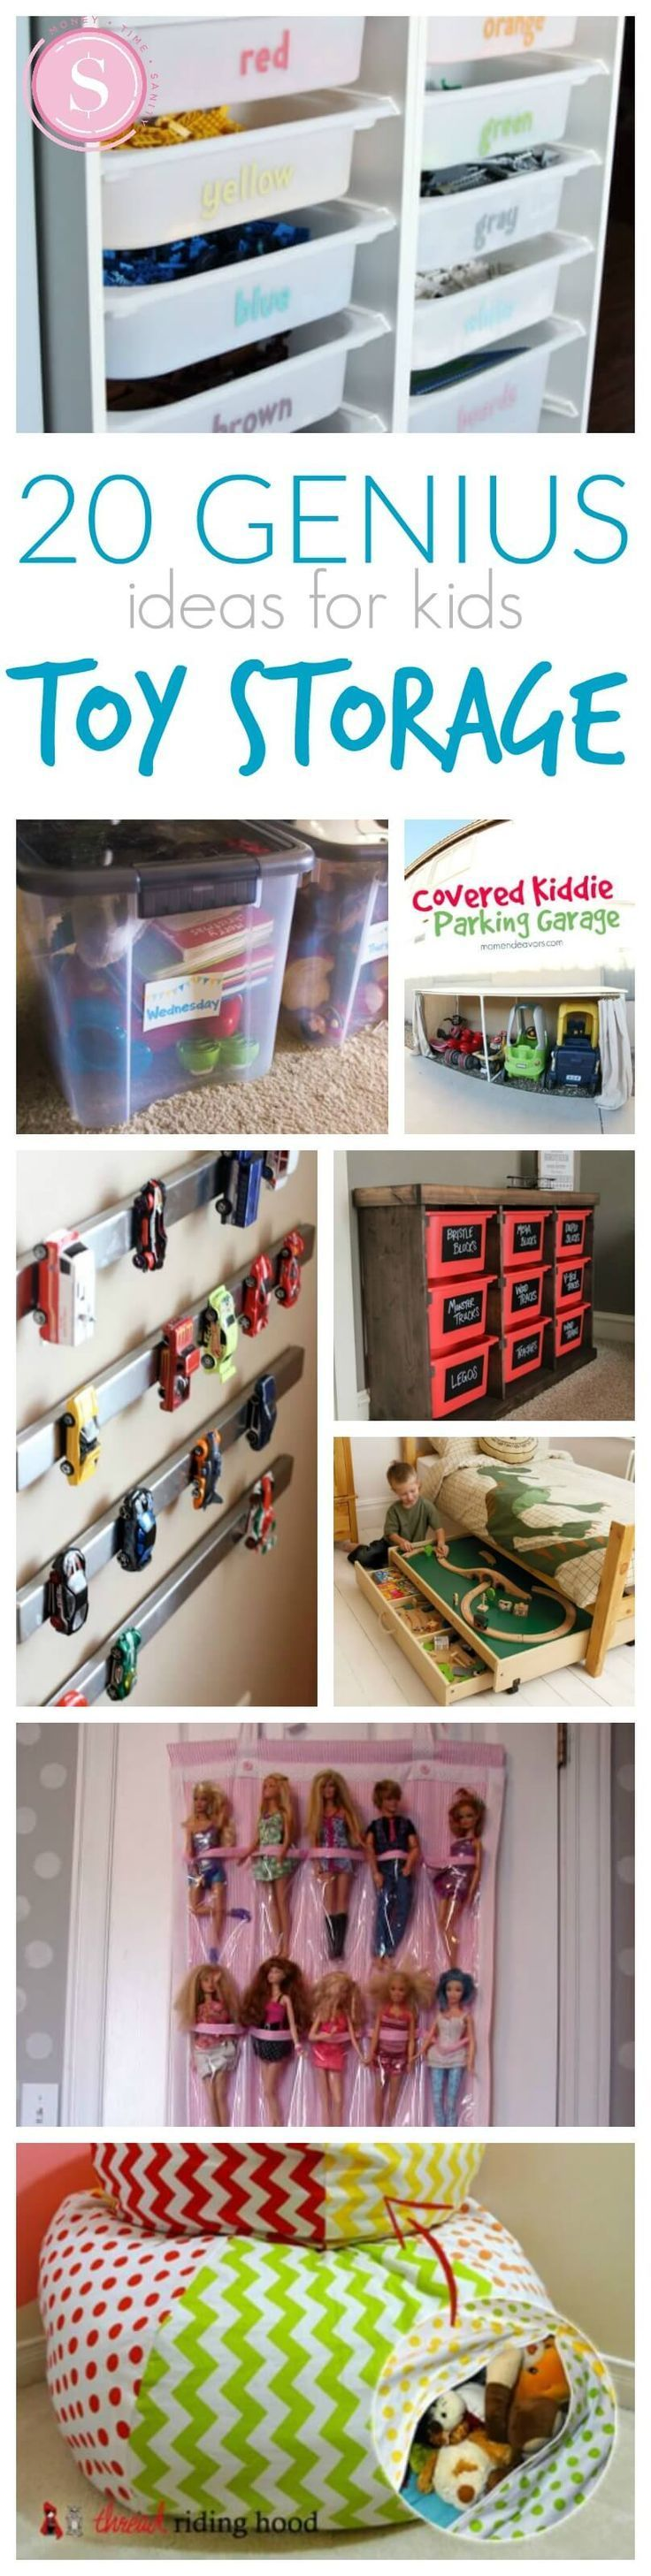 if you live in a small space staying organized is always a challenge with kids but these 20 genius toy storage ideas can help